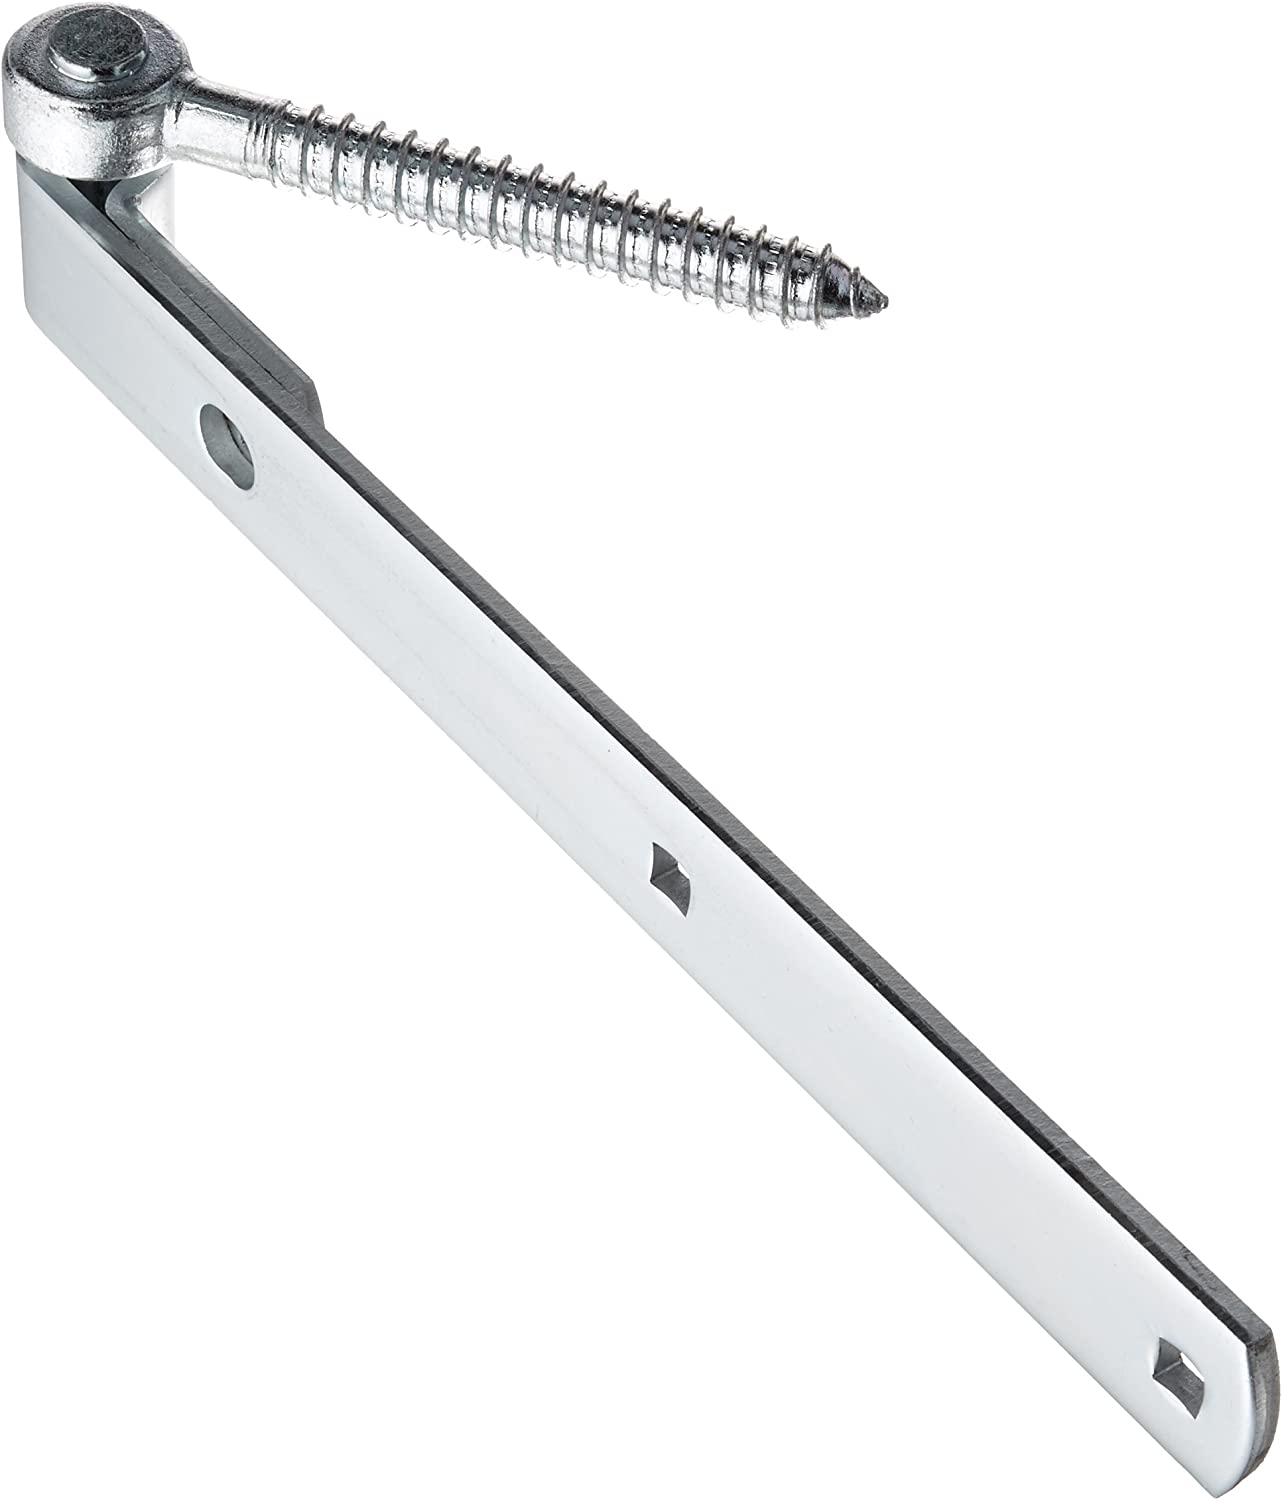 Stanley National N129-809 MFG.Sales Super beauty product restock discount quality top CO. 14 290BC STRP - Hinge